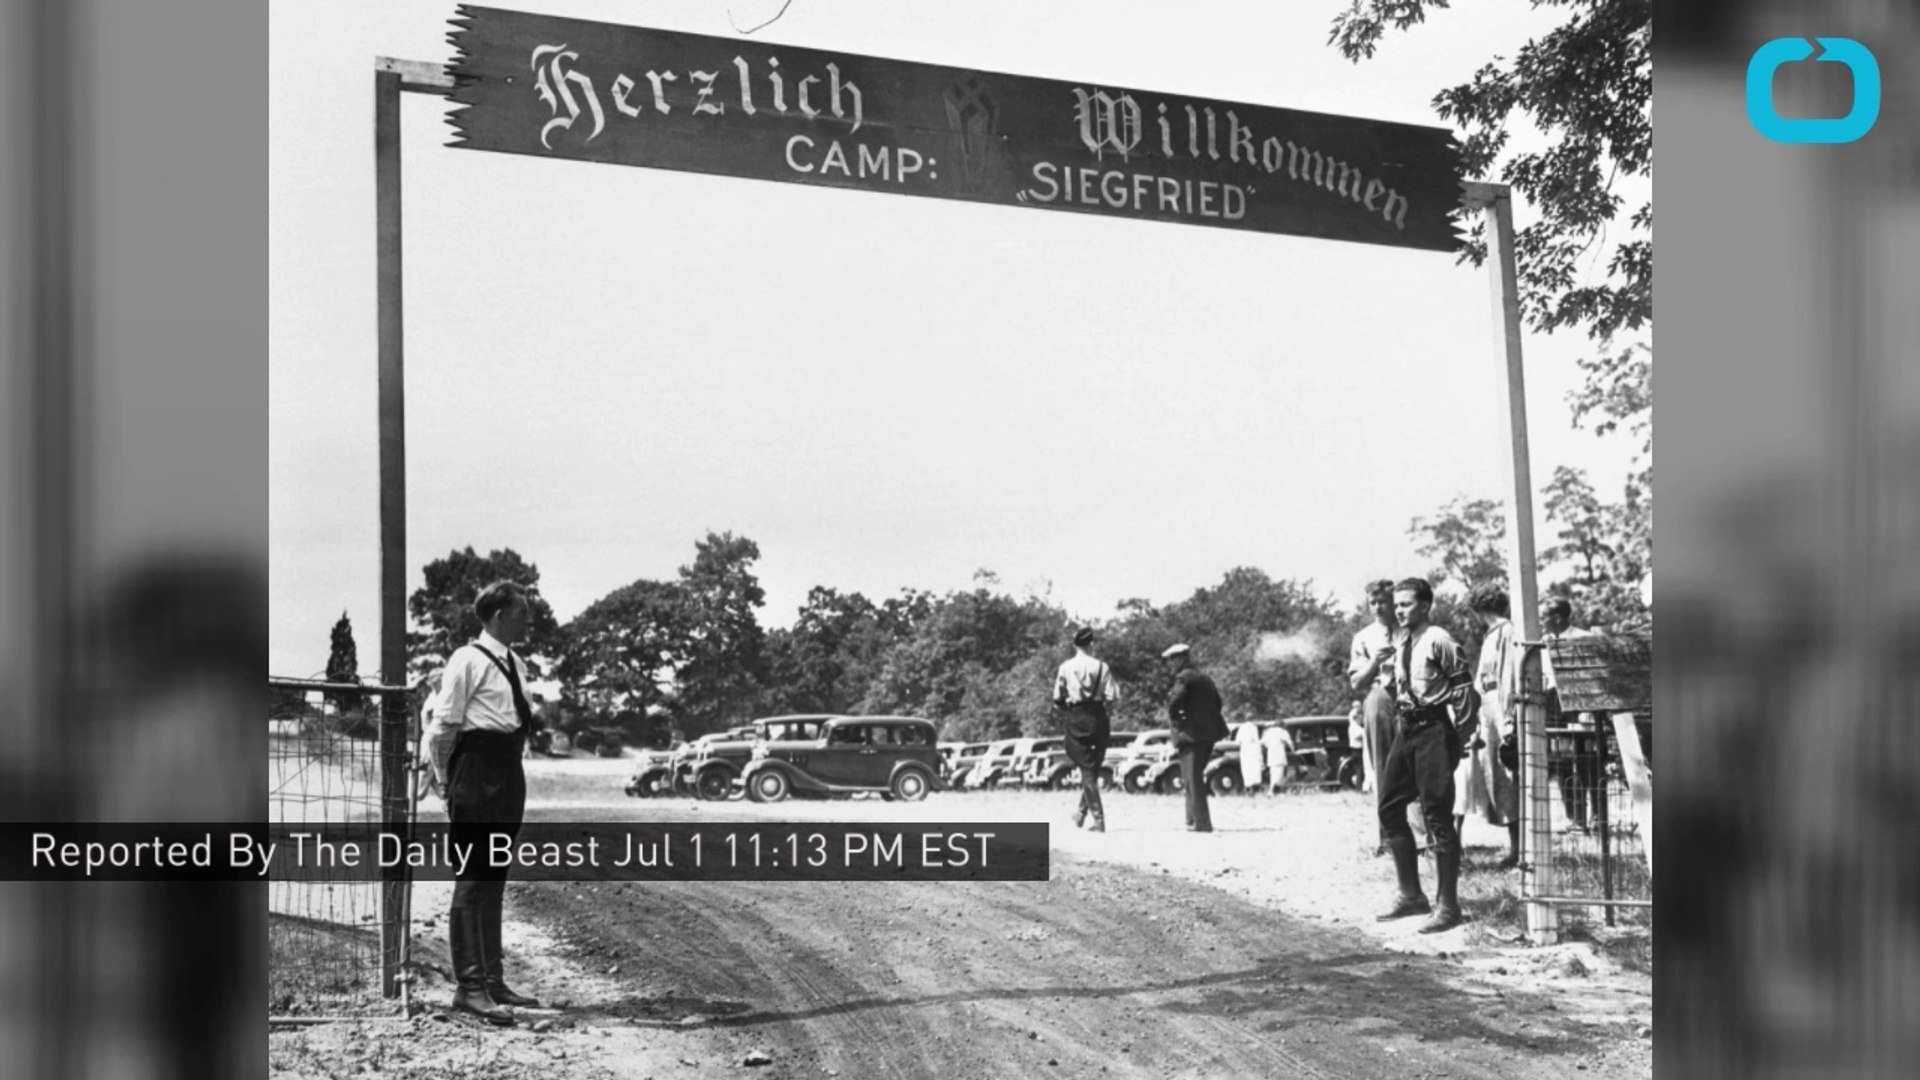 Summer Camp In 1930s Long Island Hitler Youth Style